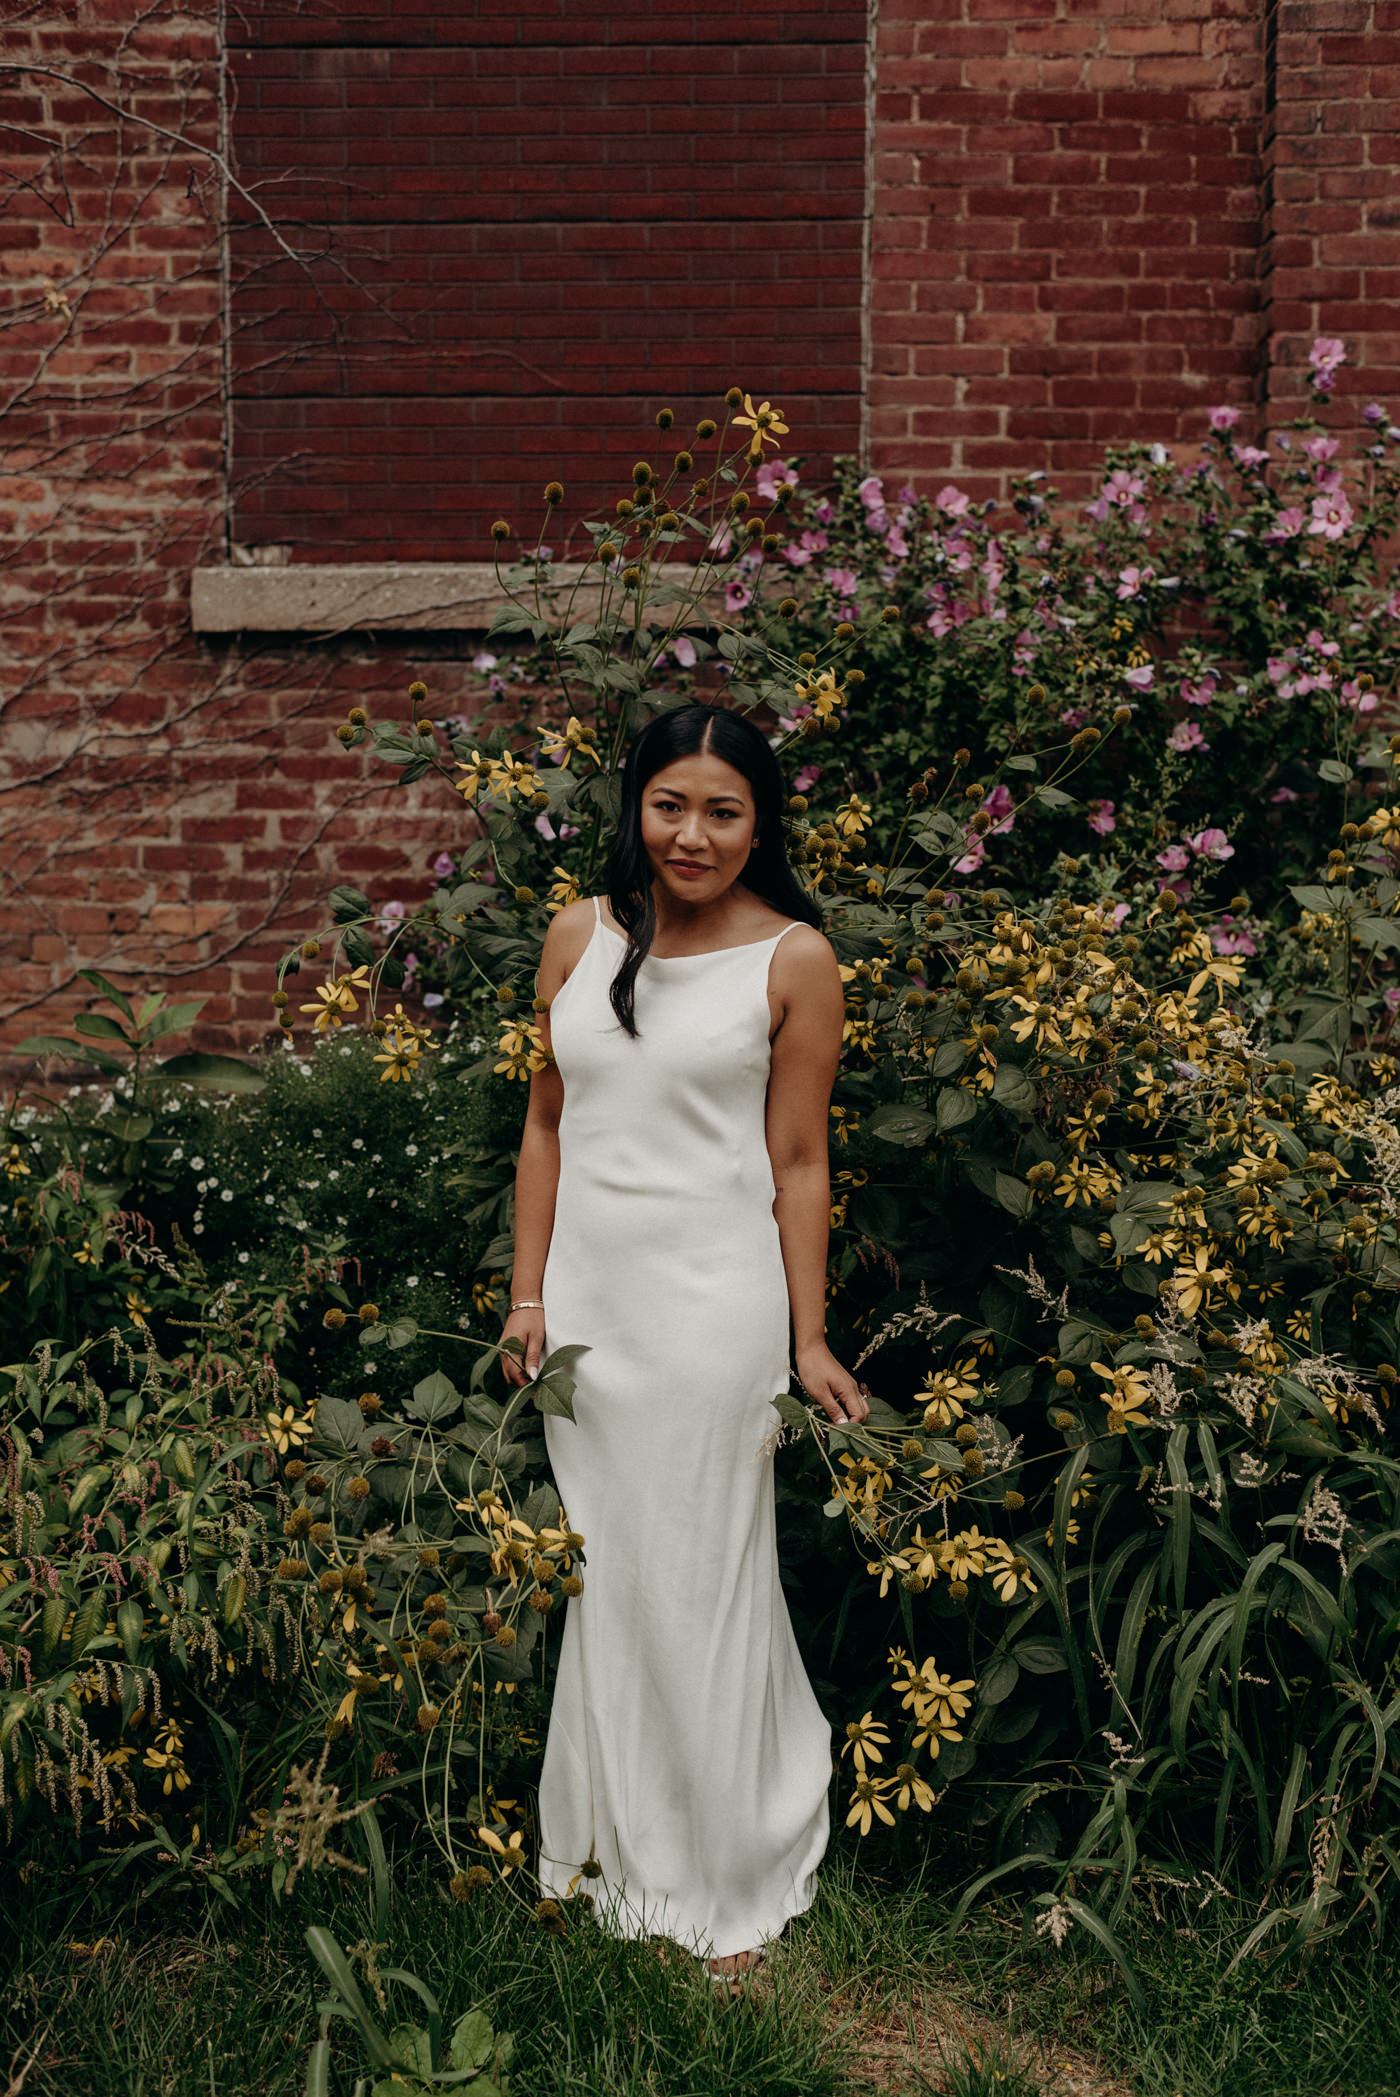 Toronto wedding portraits near Distillery District